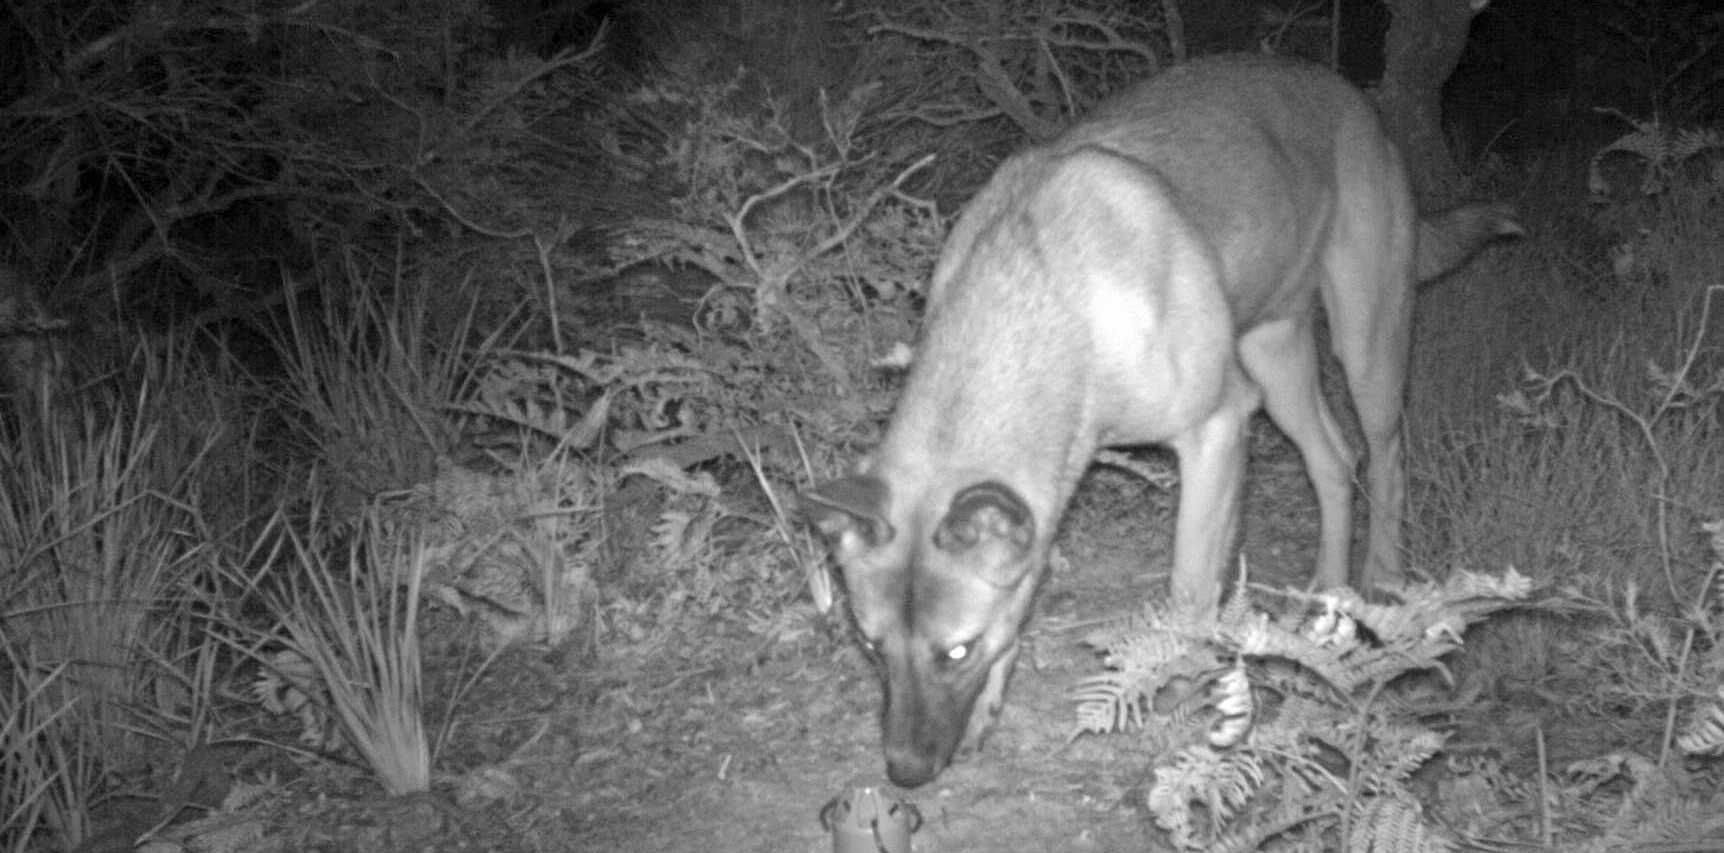 A wild dog believed to be responsible for killing a number of wallabies in Arakwal National Park and Cape Byron State Conservation Area.